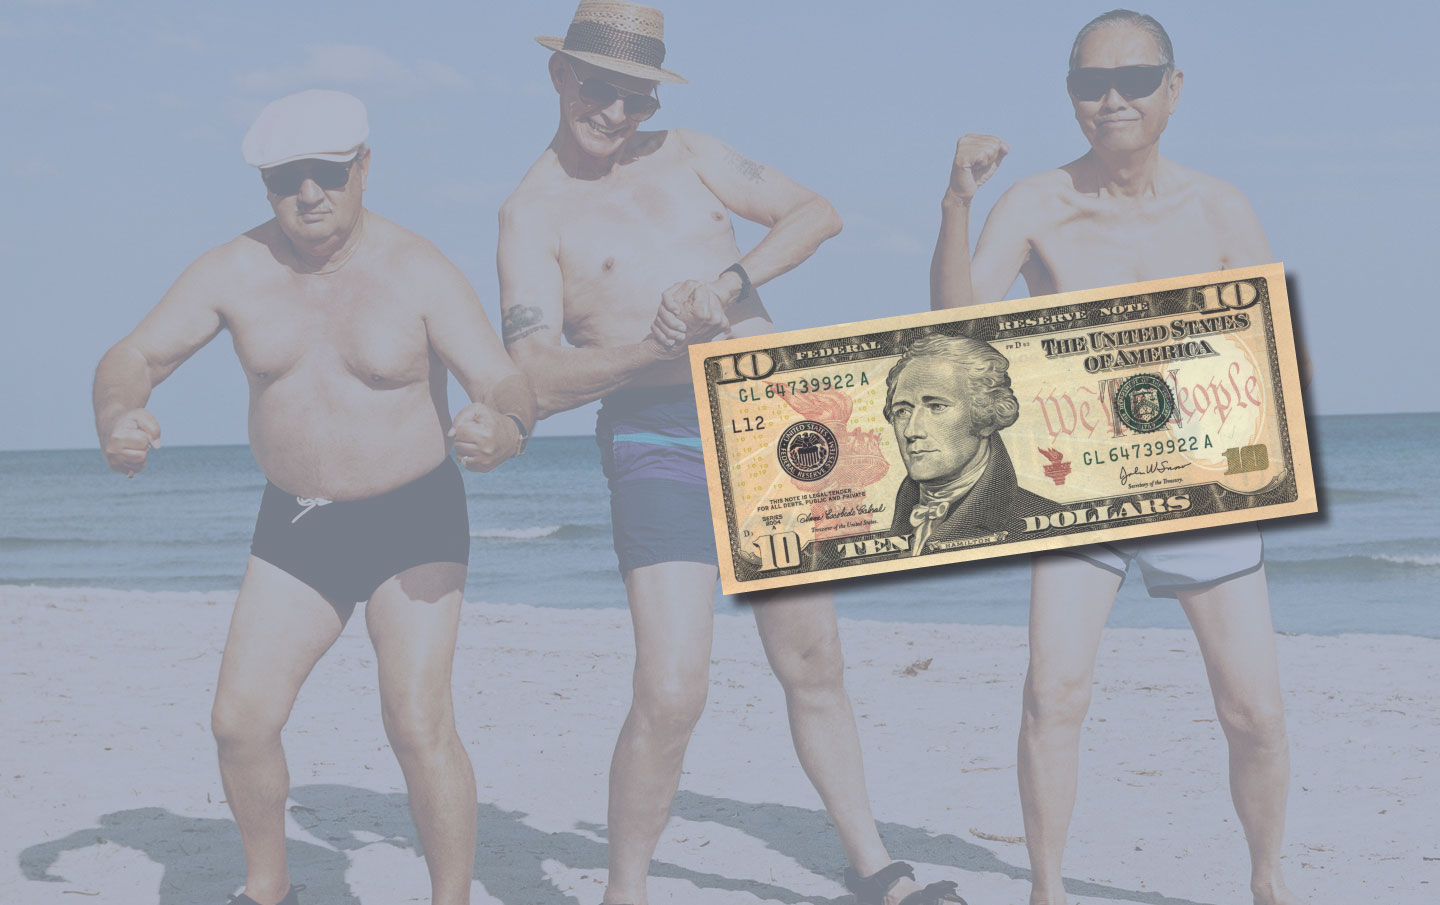 3 older men on a beach with no shirt in swimming trunks and a 10 dollar bill